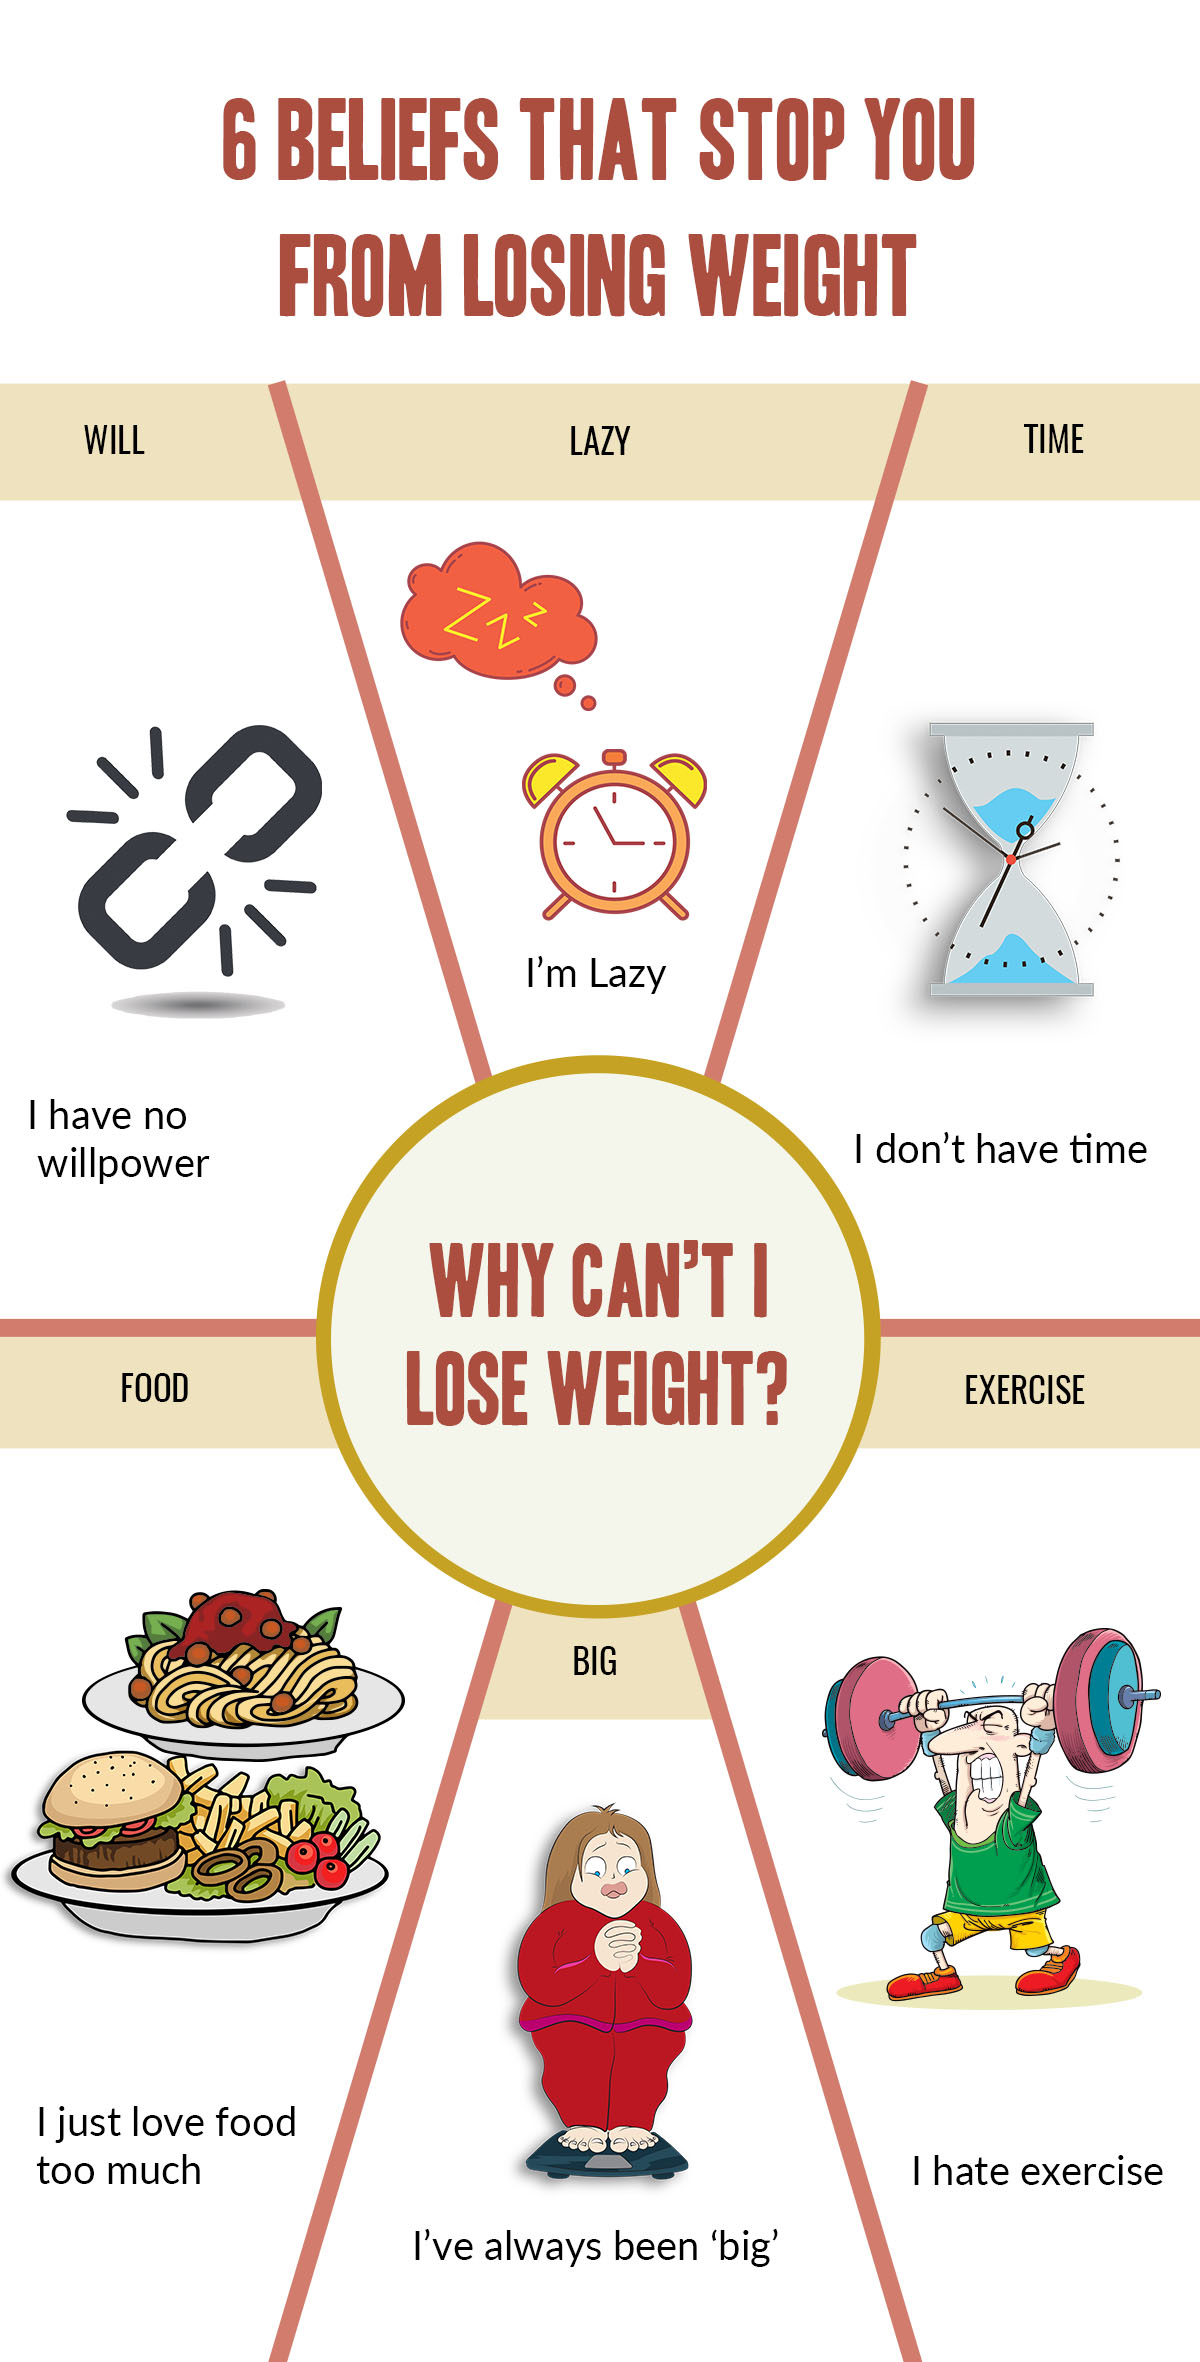 our hypnotherapist explains the specific subconscious beliefs that hinder weight loss